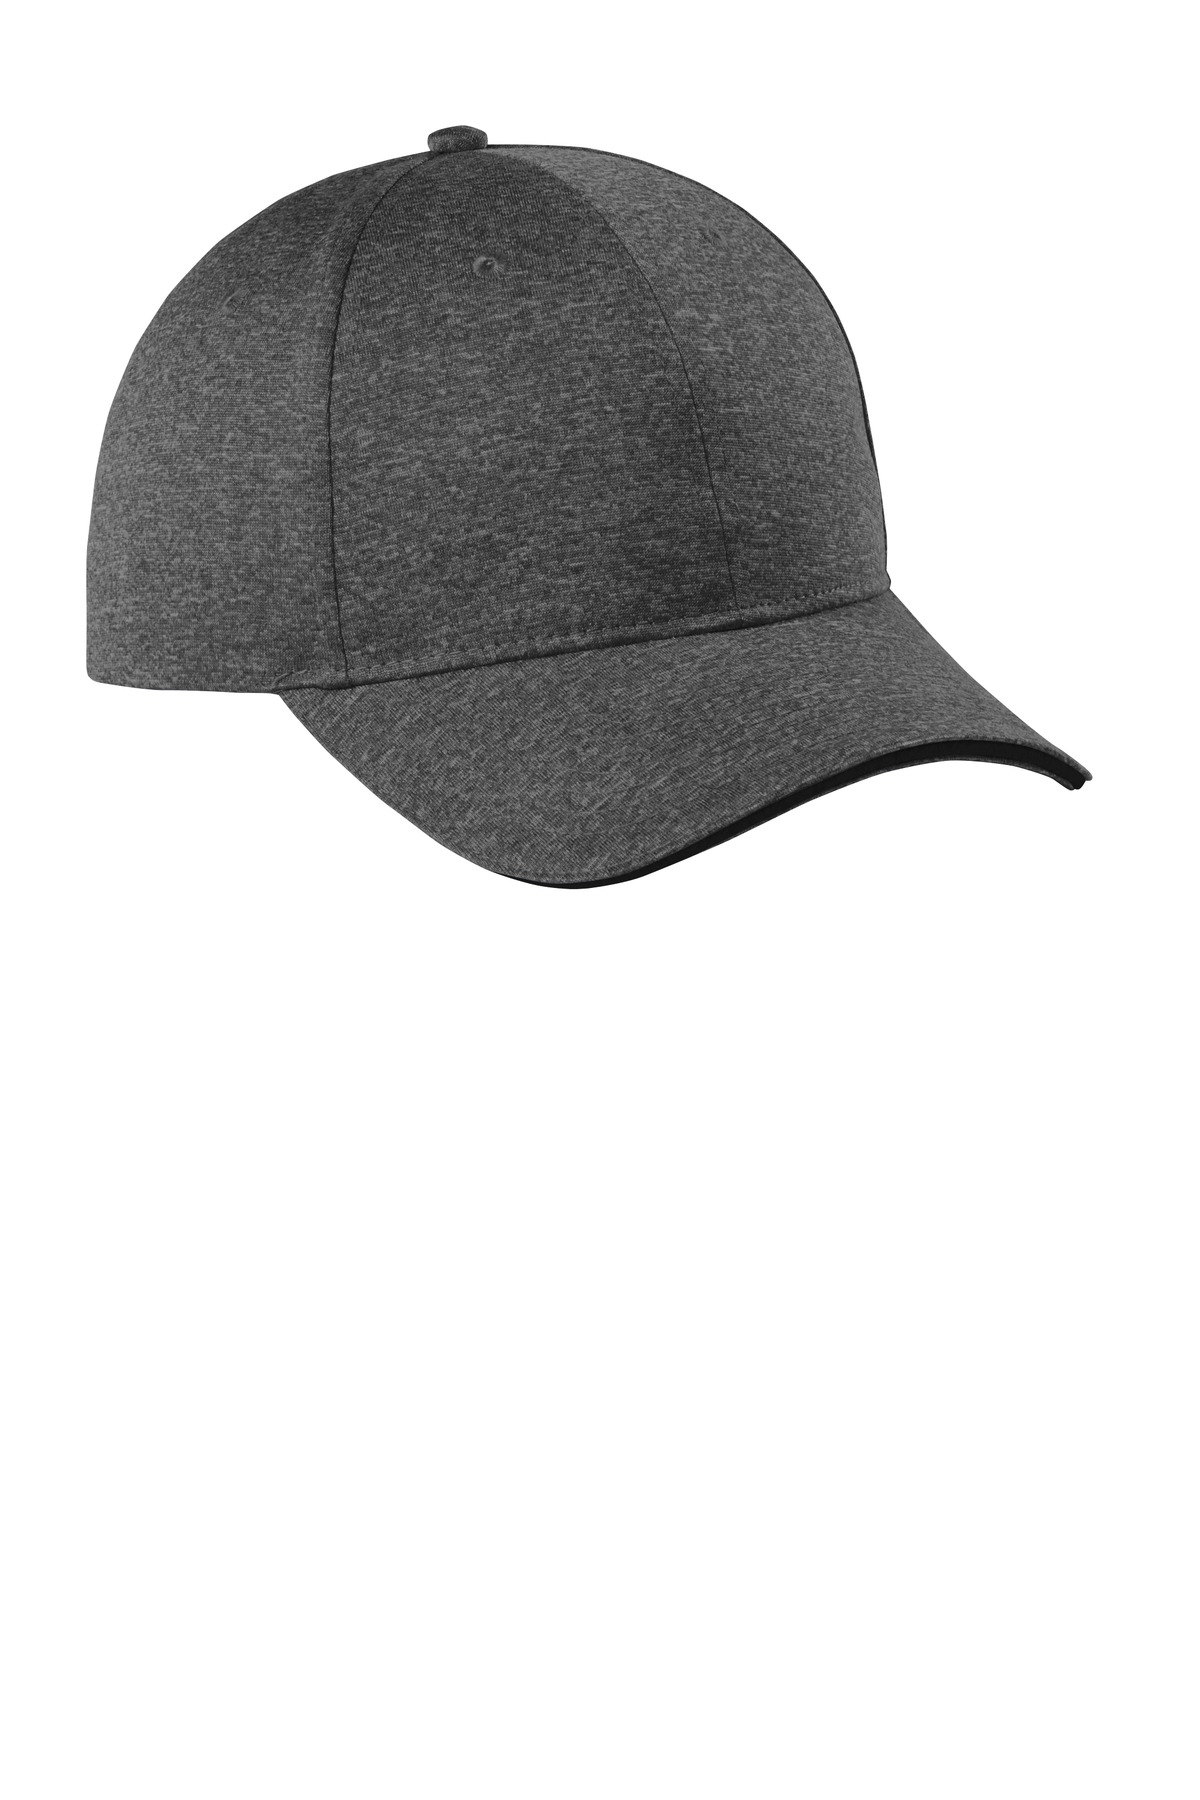 Sport-Tek  ®  Contender  ™  Snapback Cap. STC44 - Graphite Heather/ Black